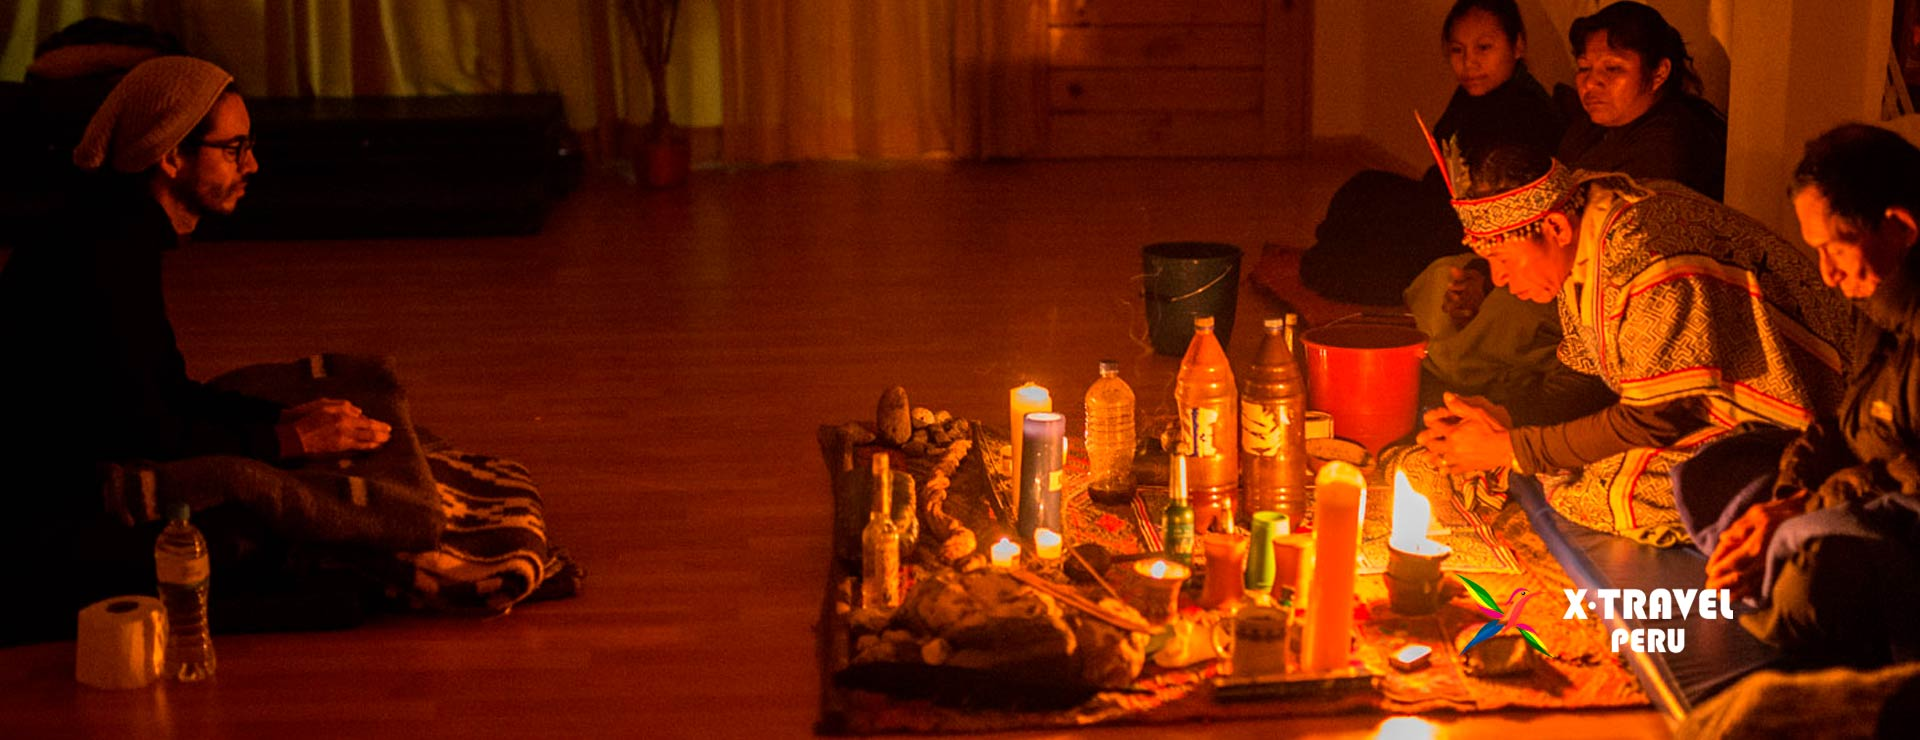 PERU – AYAHUASCA HEALING 1 day in Sacred Valley of the Incas